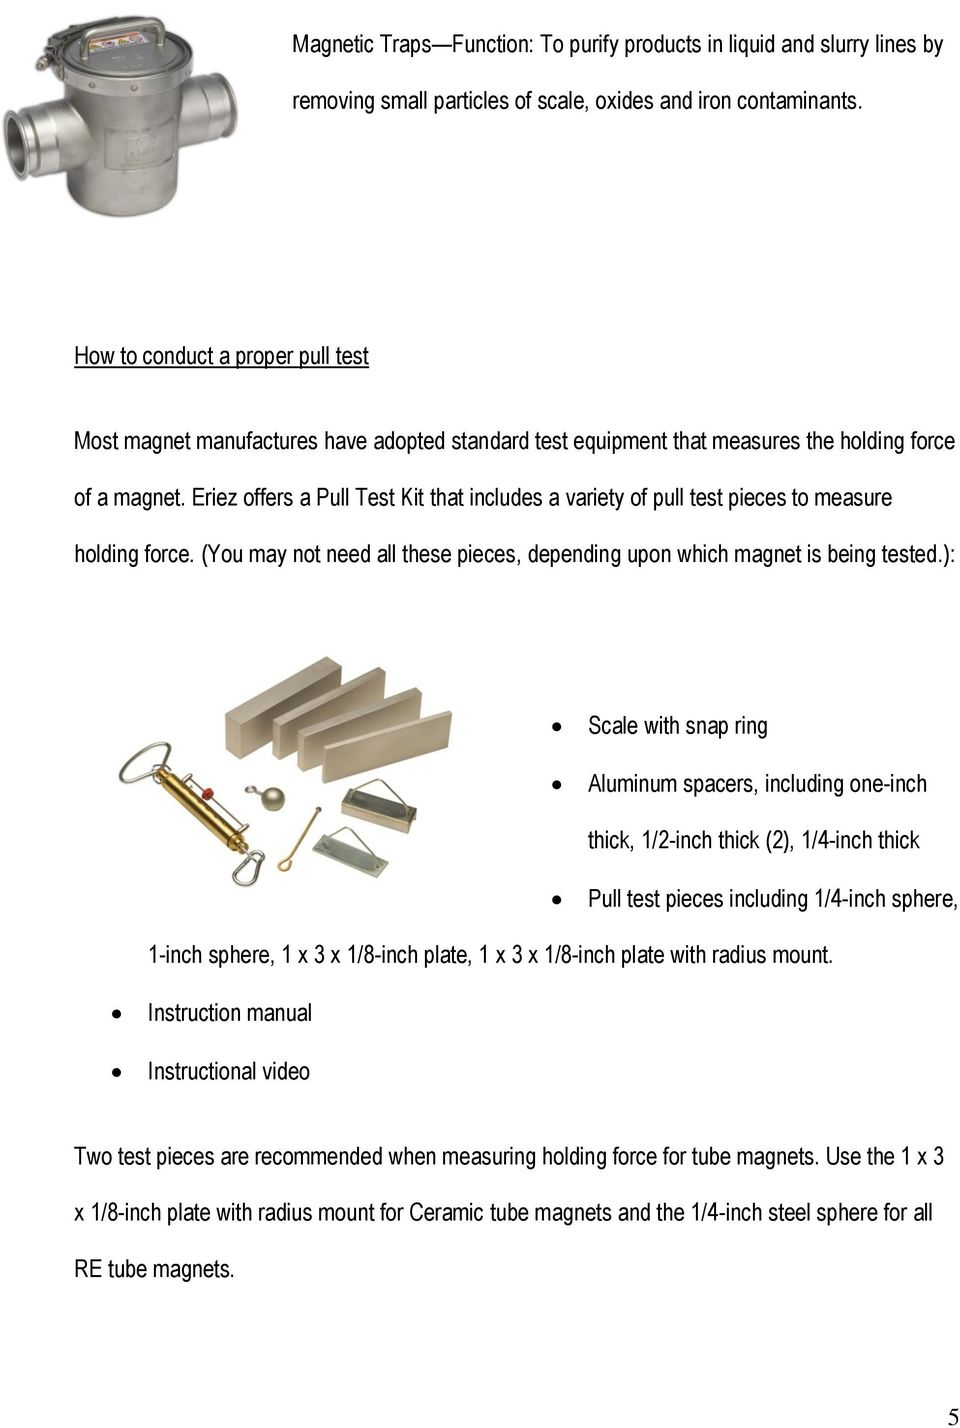 Eriez offers a Pull Test Kit that includes a variety of pull test pieces to measure holding force. (You may not need all these pieces, depending upon which magnet is being tested.